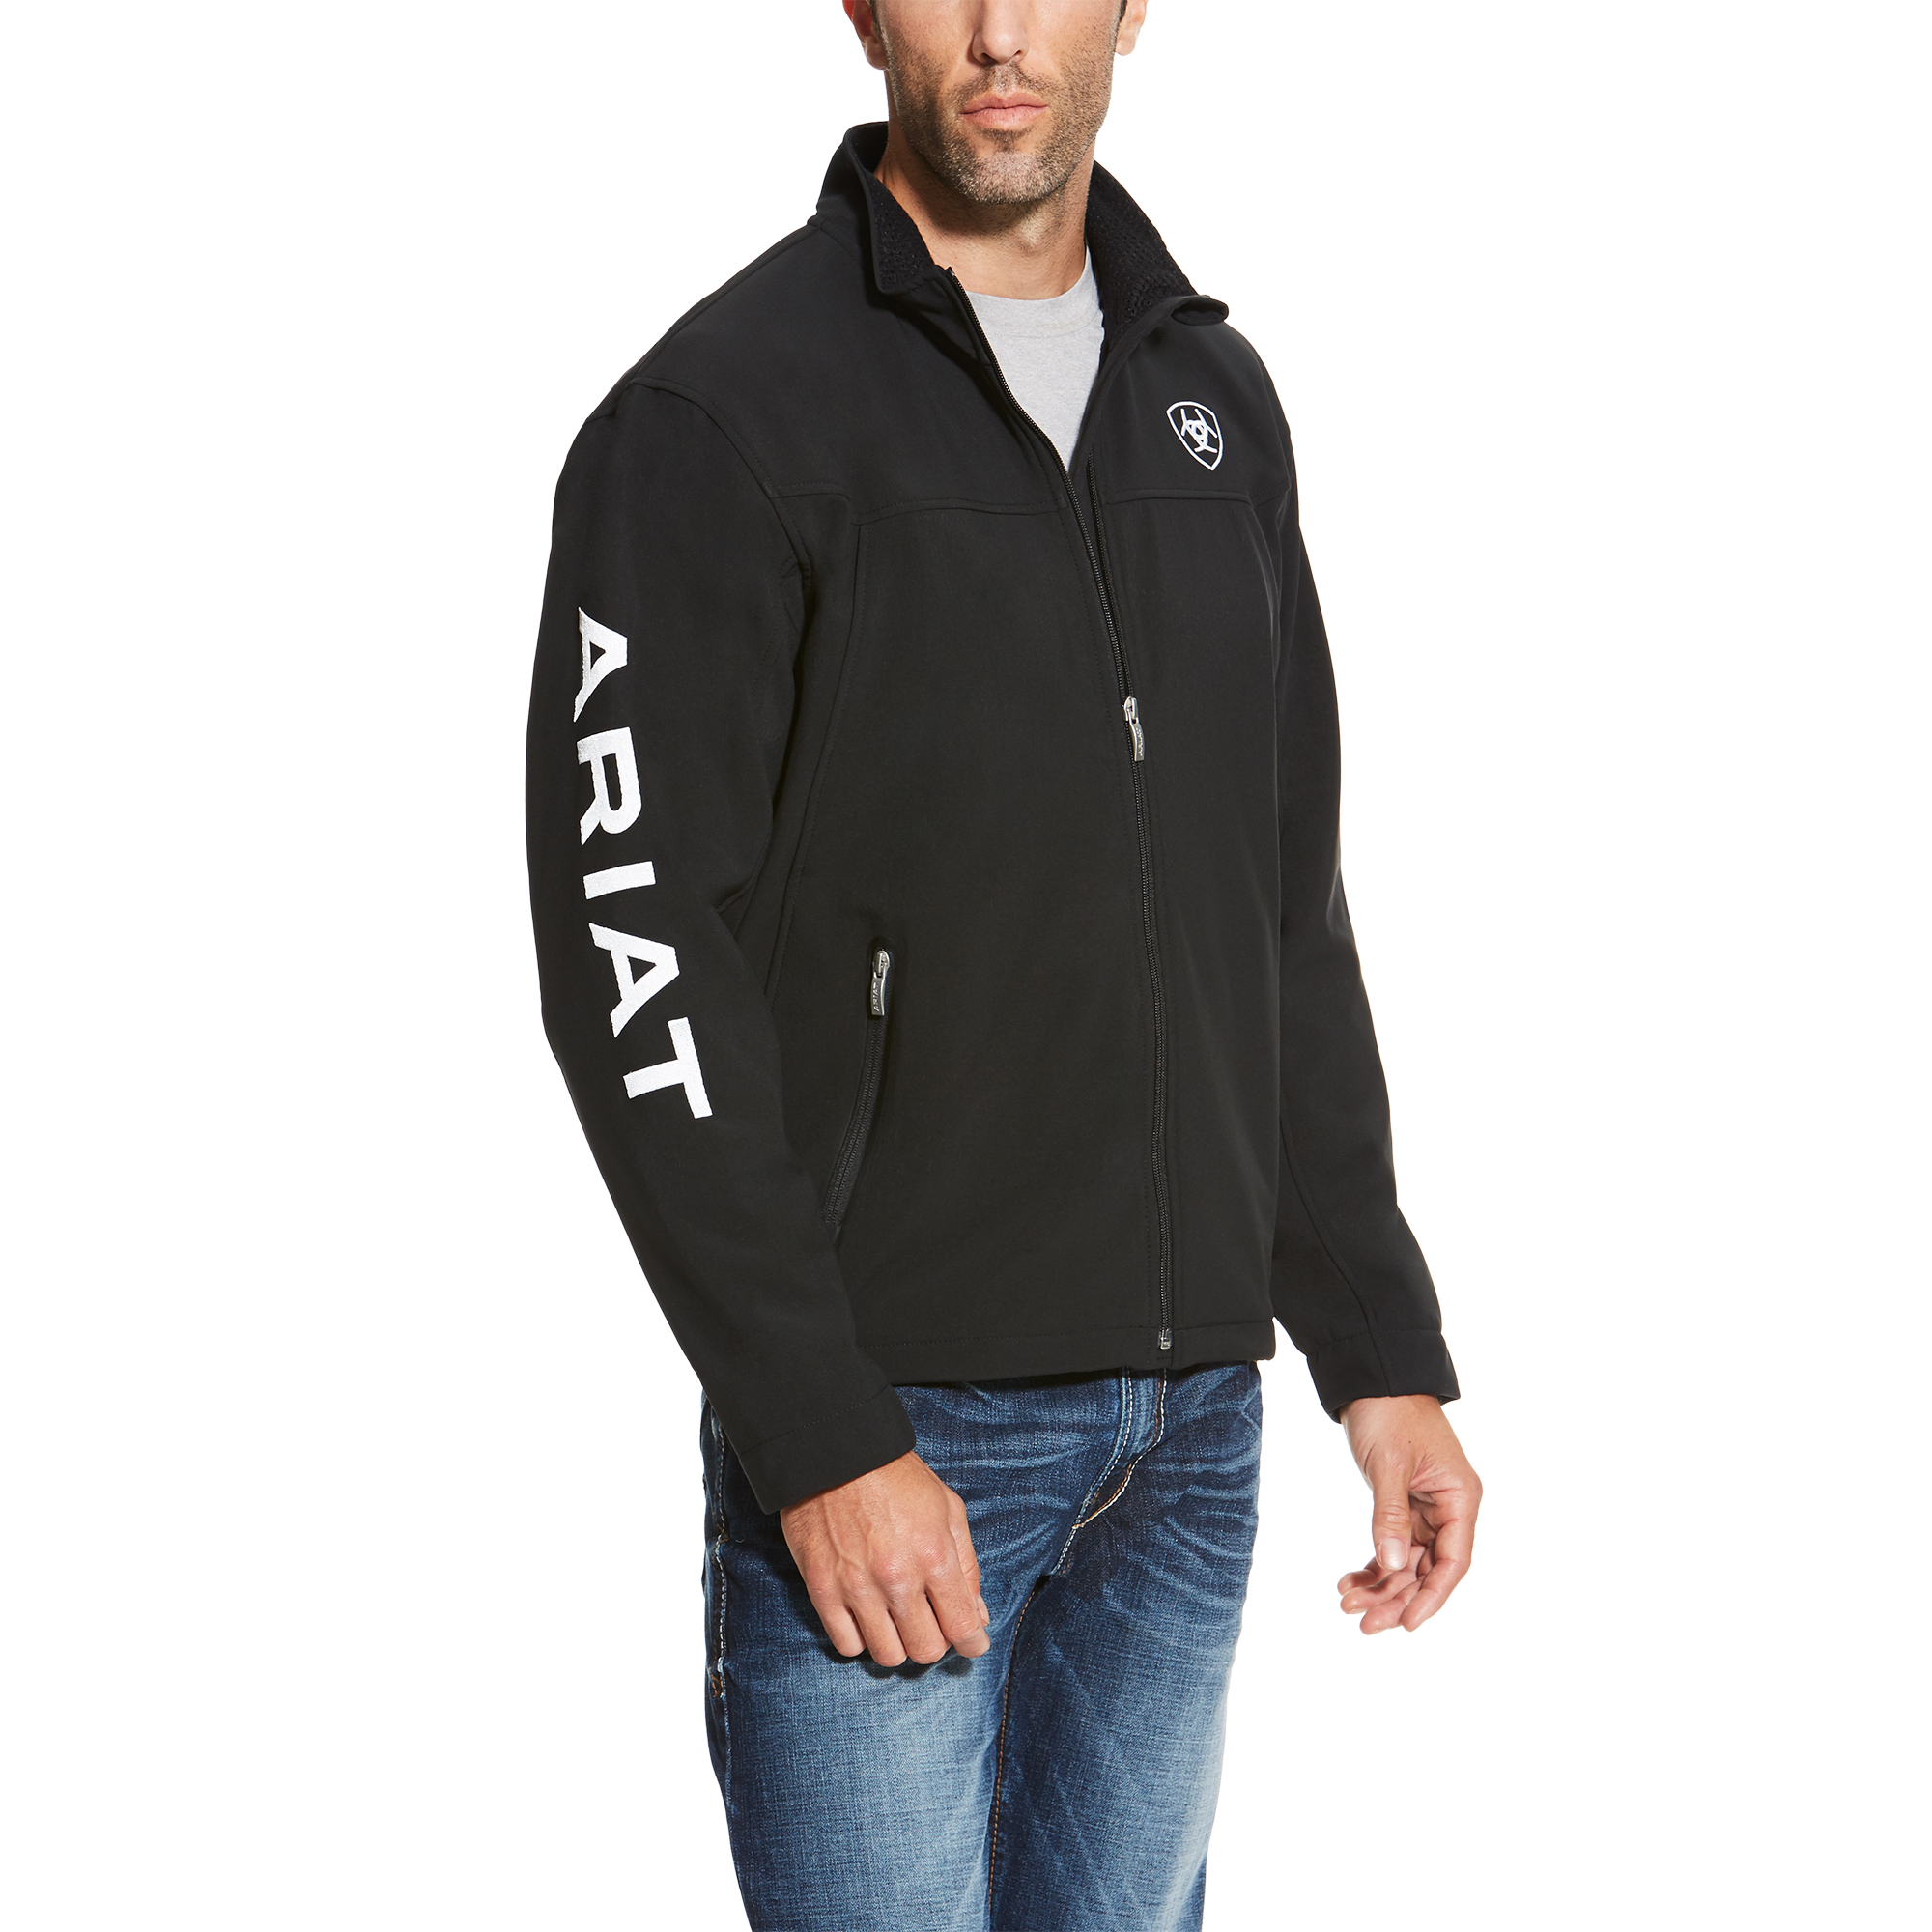 Ariat Mens New Team Softshell Jacket Navy Blue